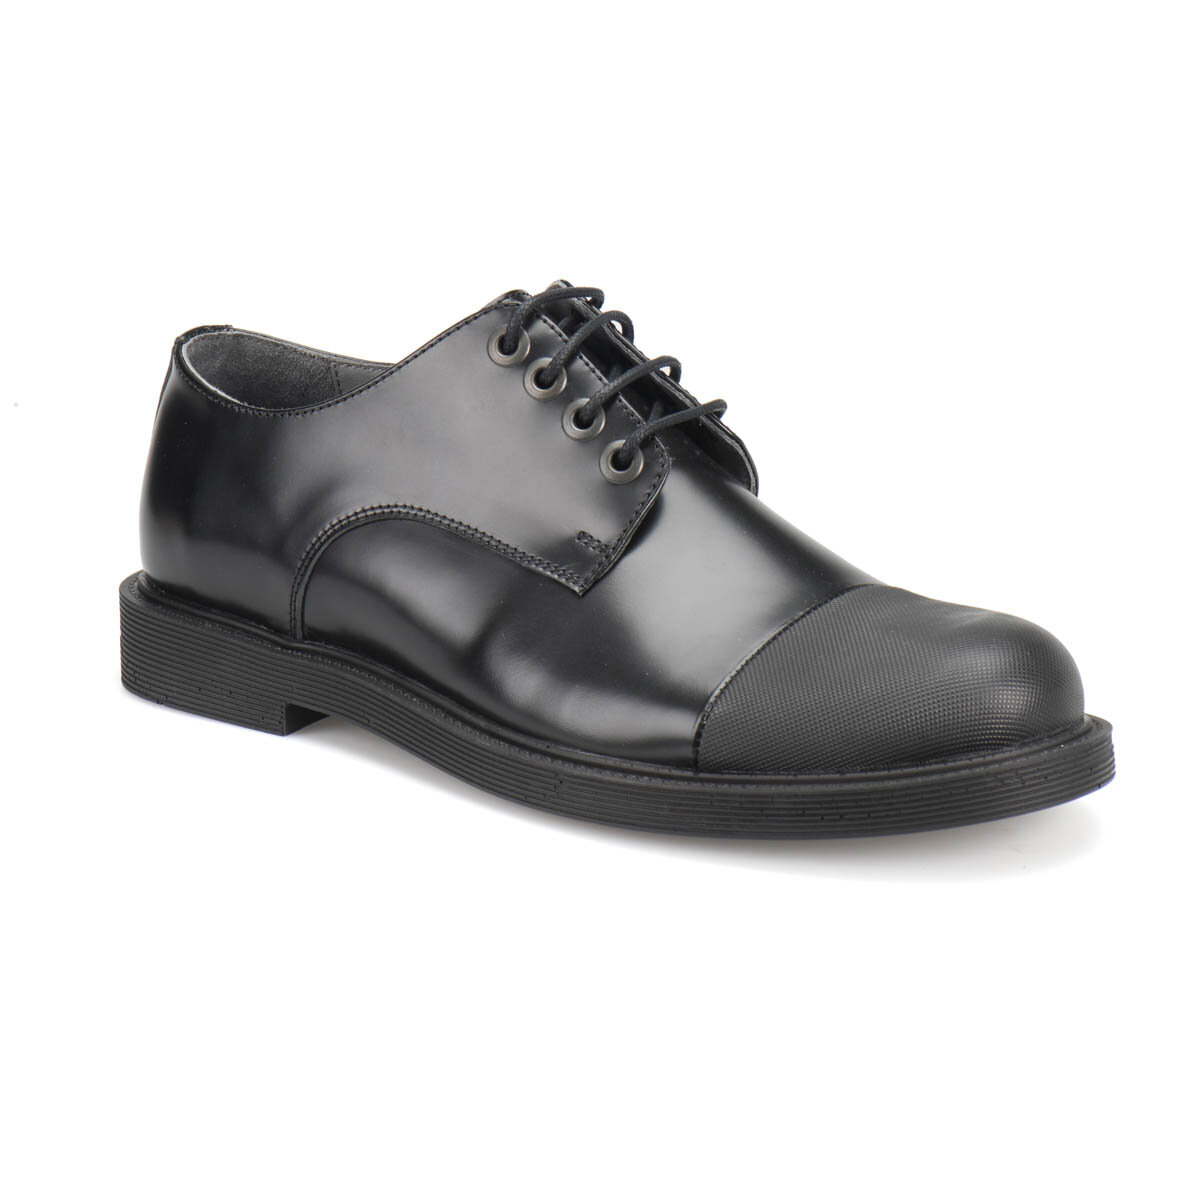 FLO BT-1 Black Male Shoes Garamond